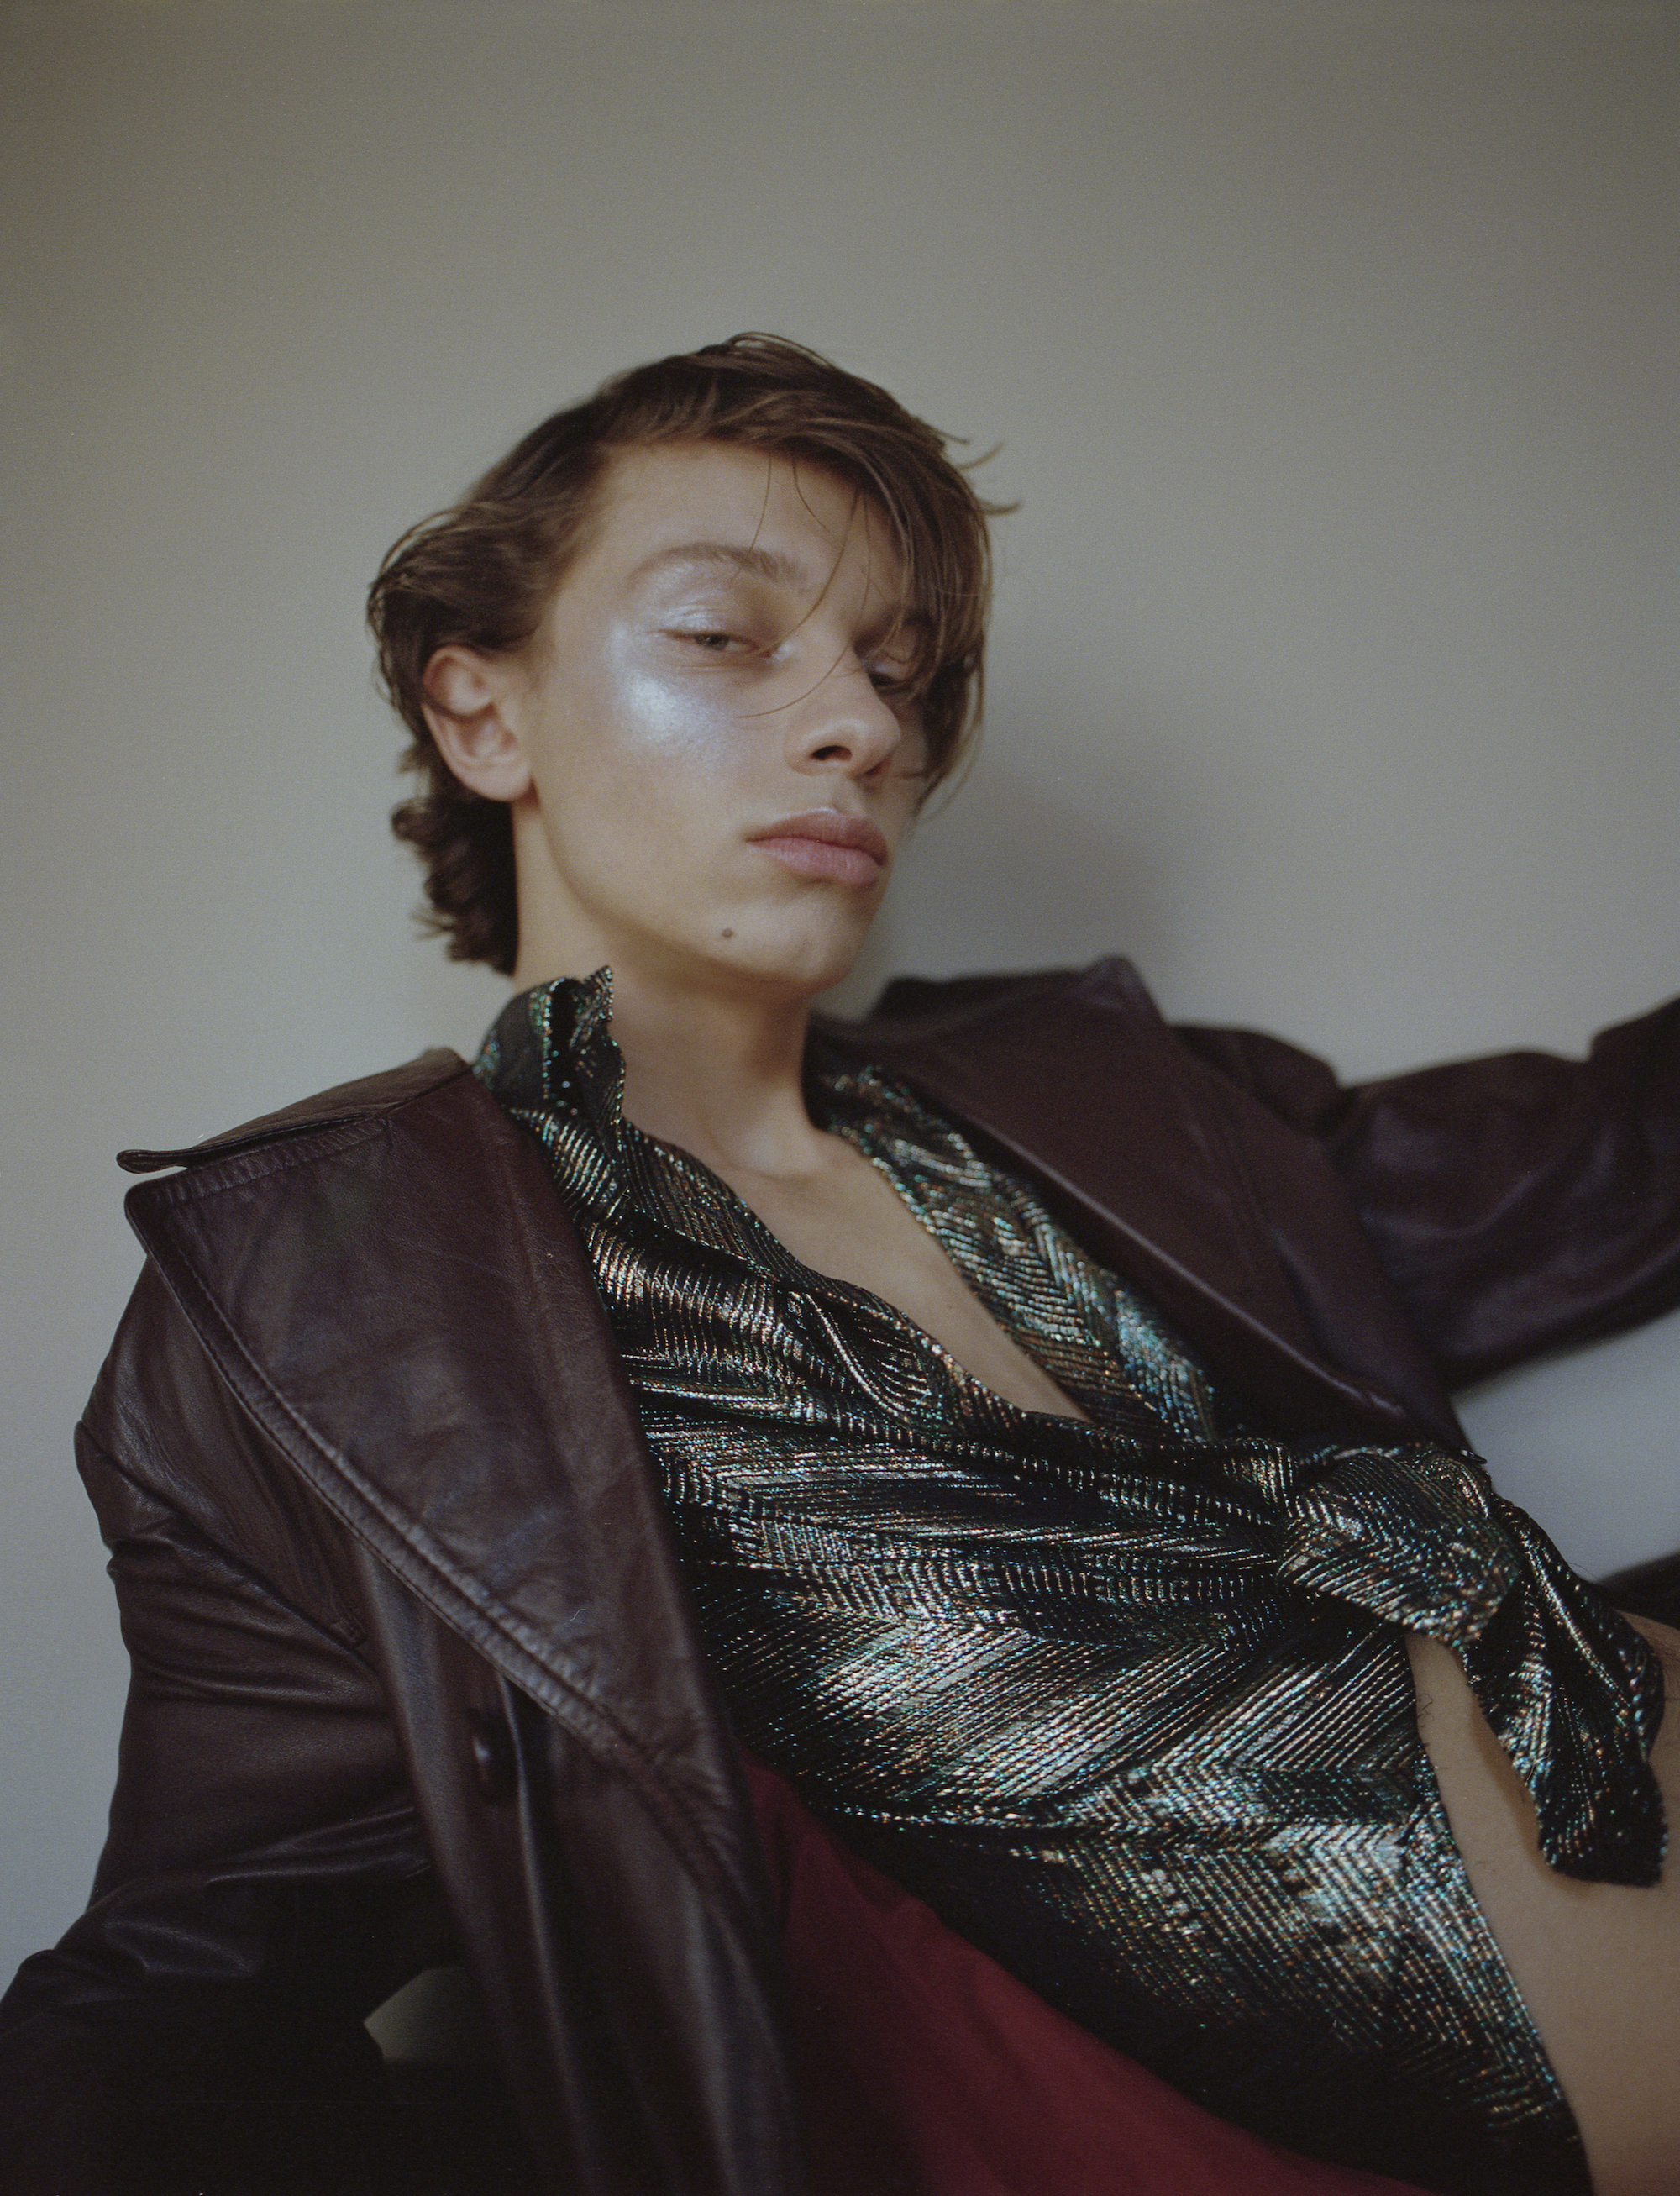 Hall of fame fashion editorial metallic shirt